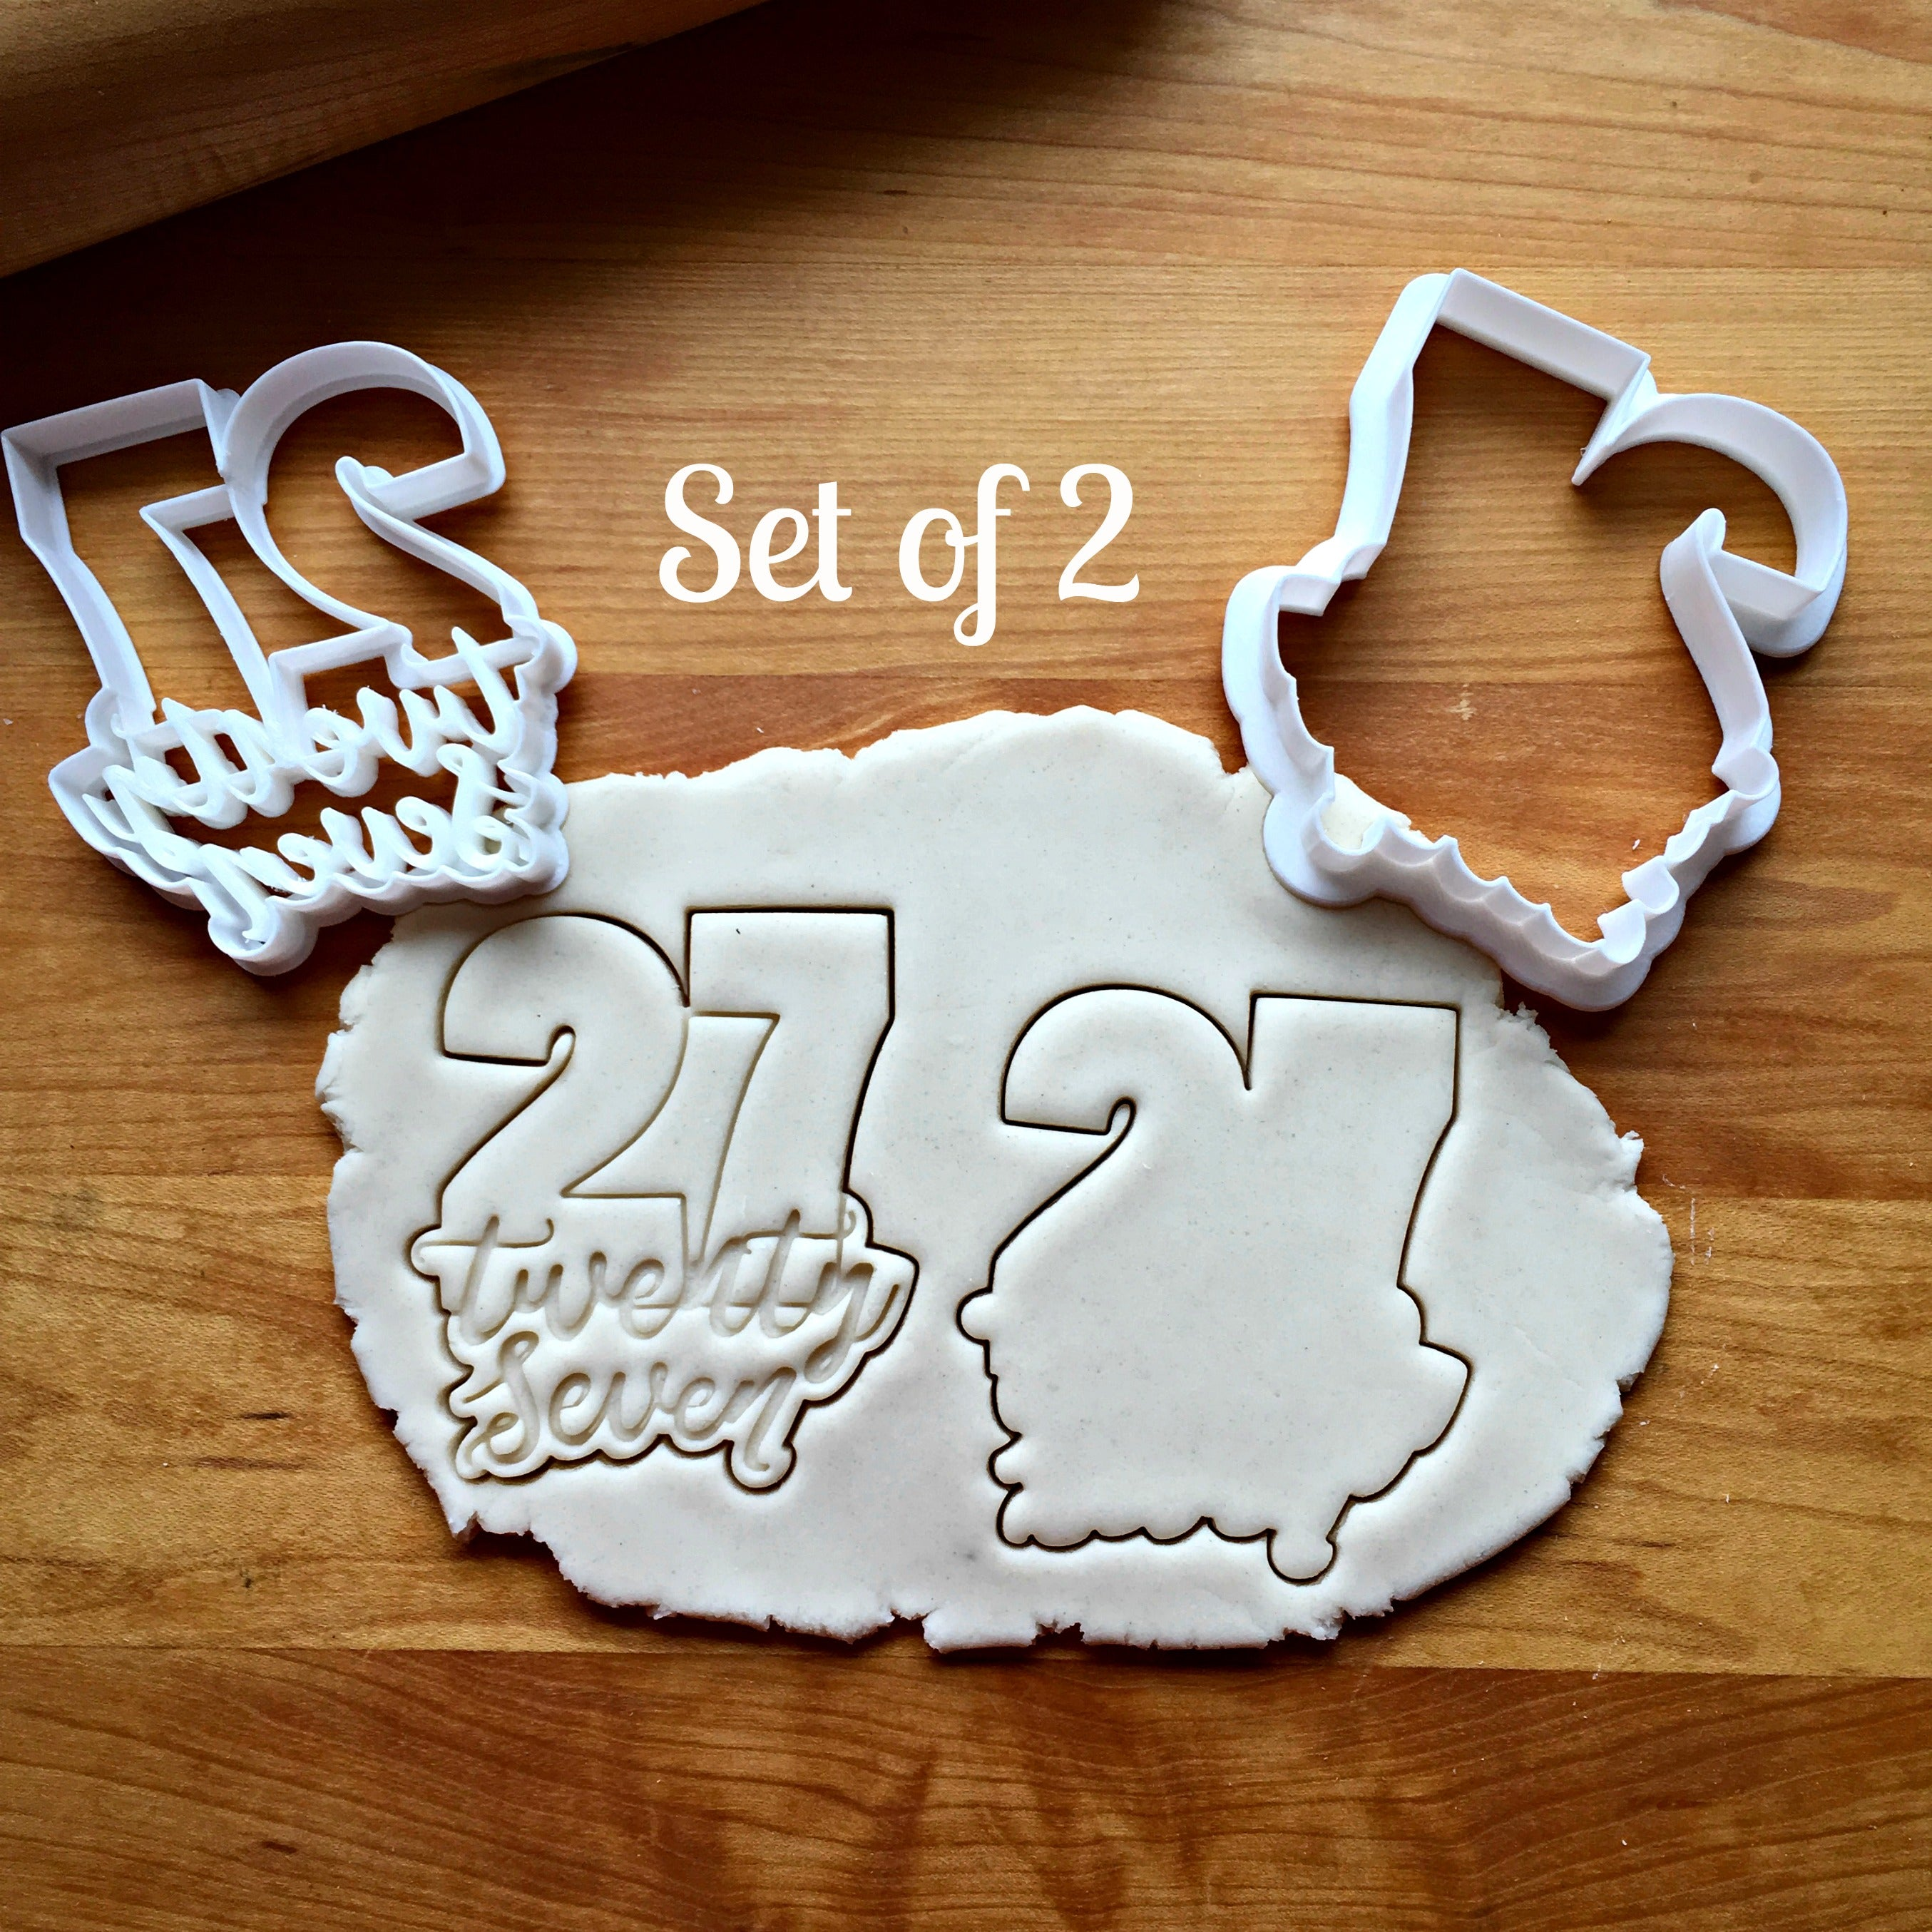 Set of 2 Lettered Number 27 Cookie Cutters/Dishwasher Safe